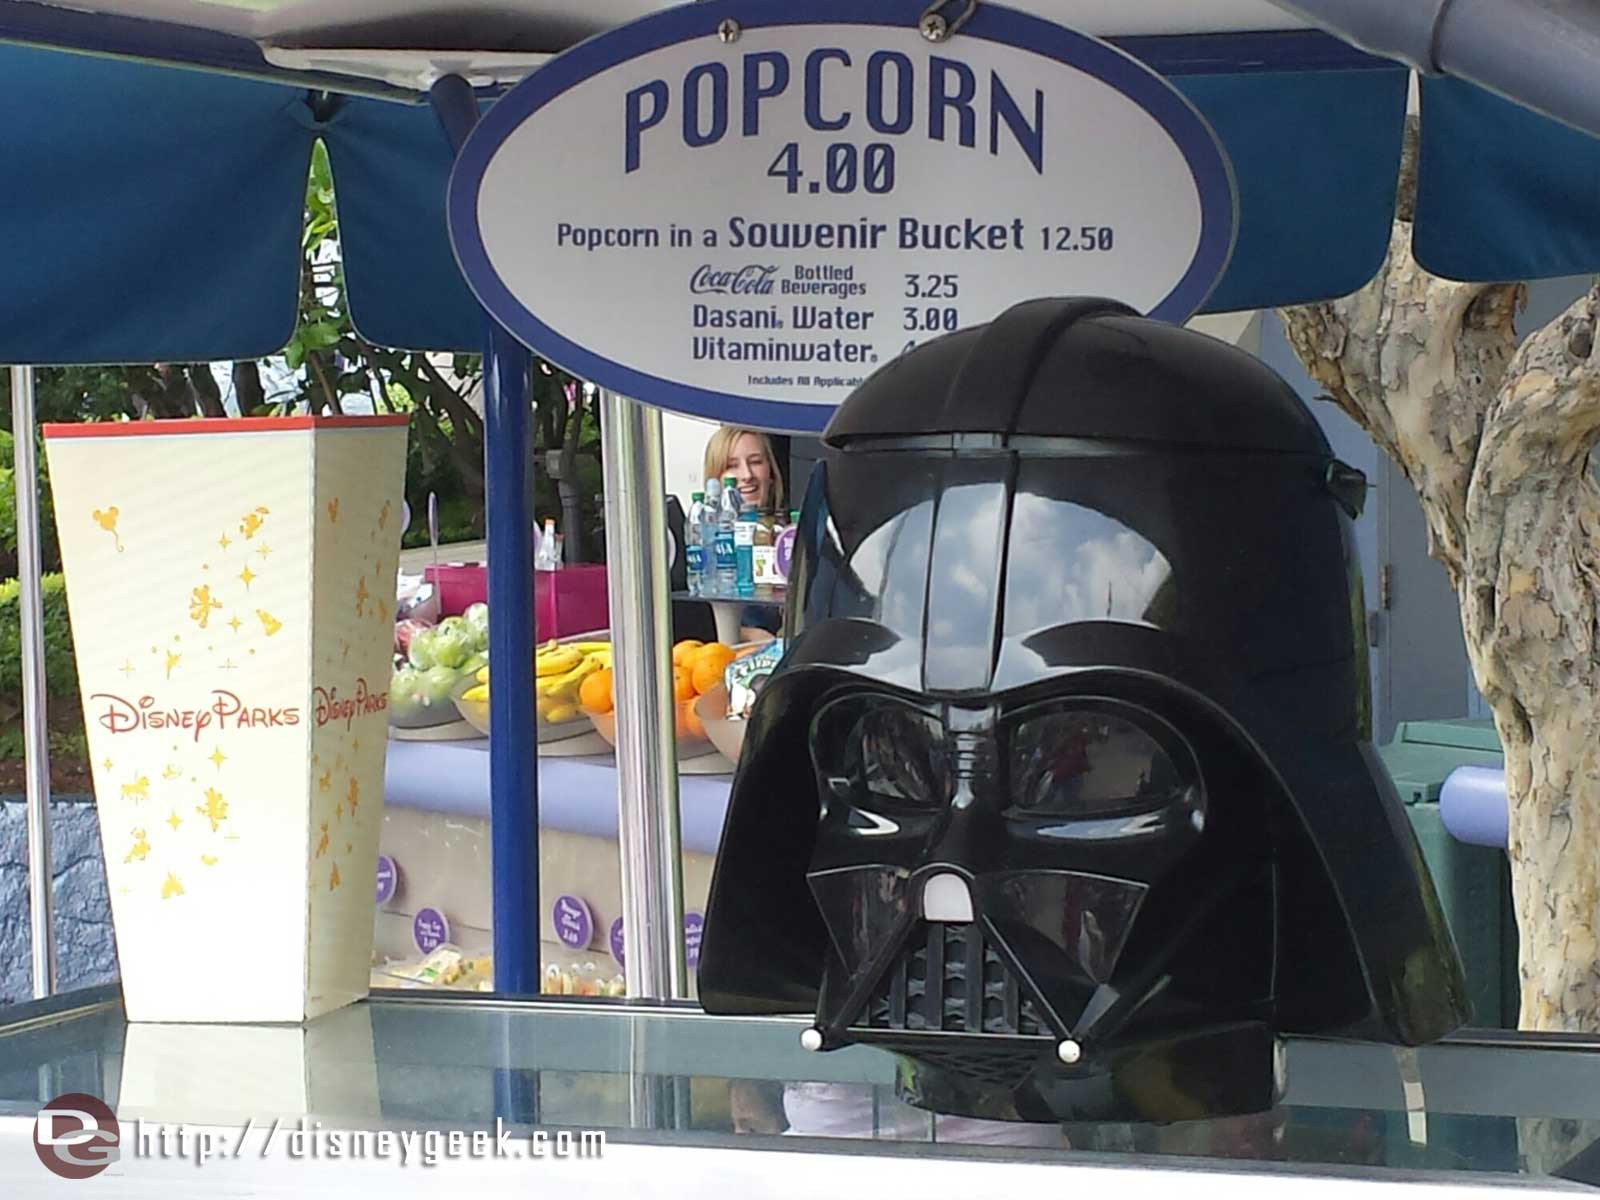 Darth Vader popcorn buckets are now available for $12.50